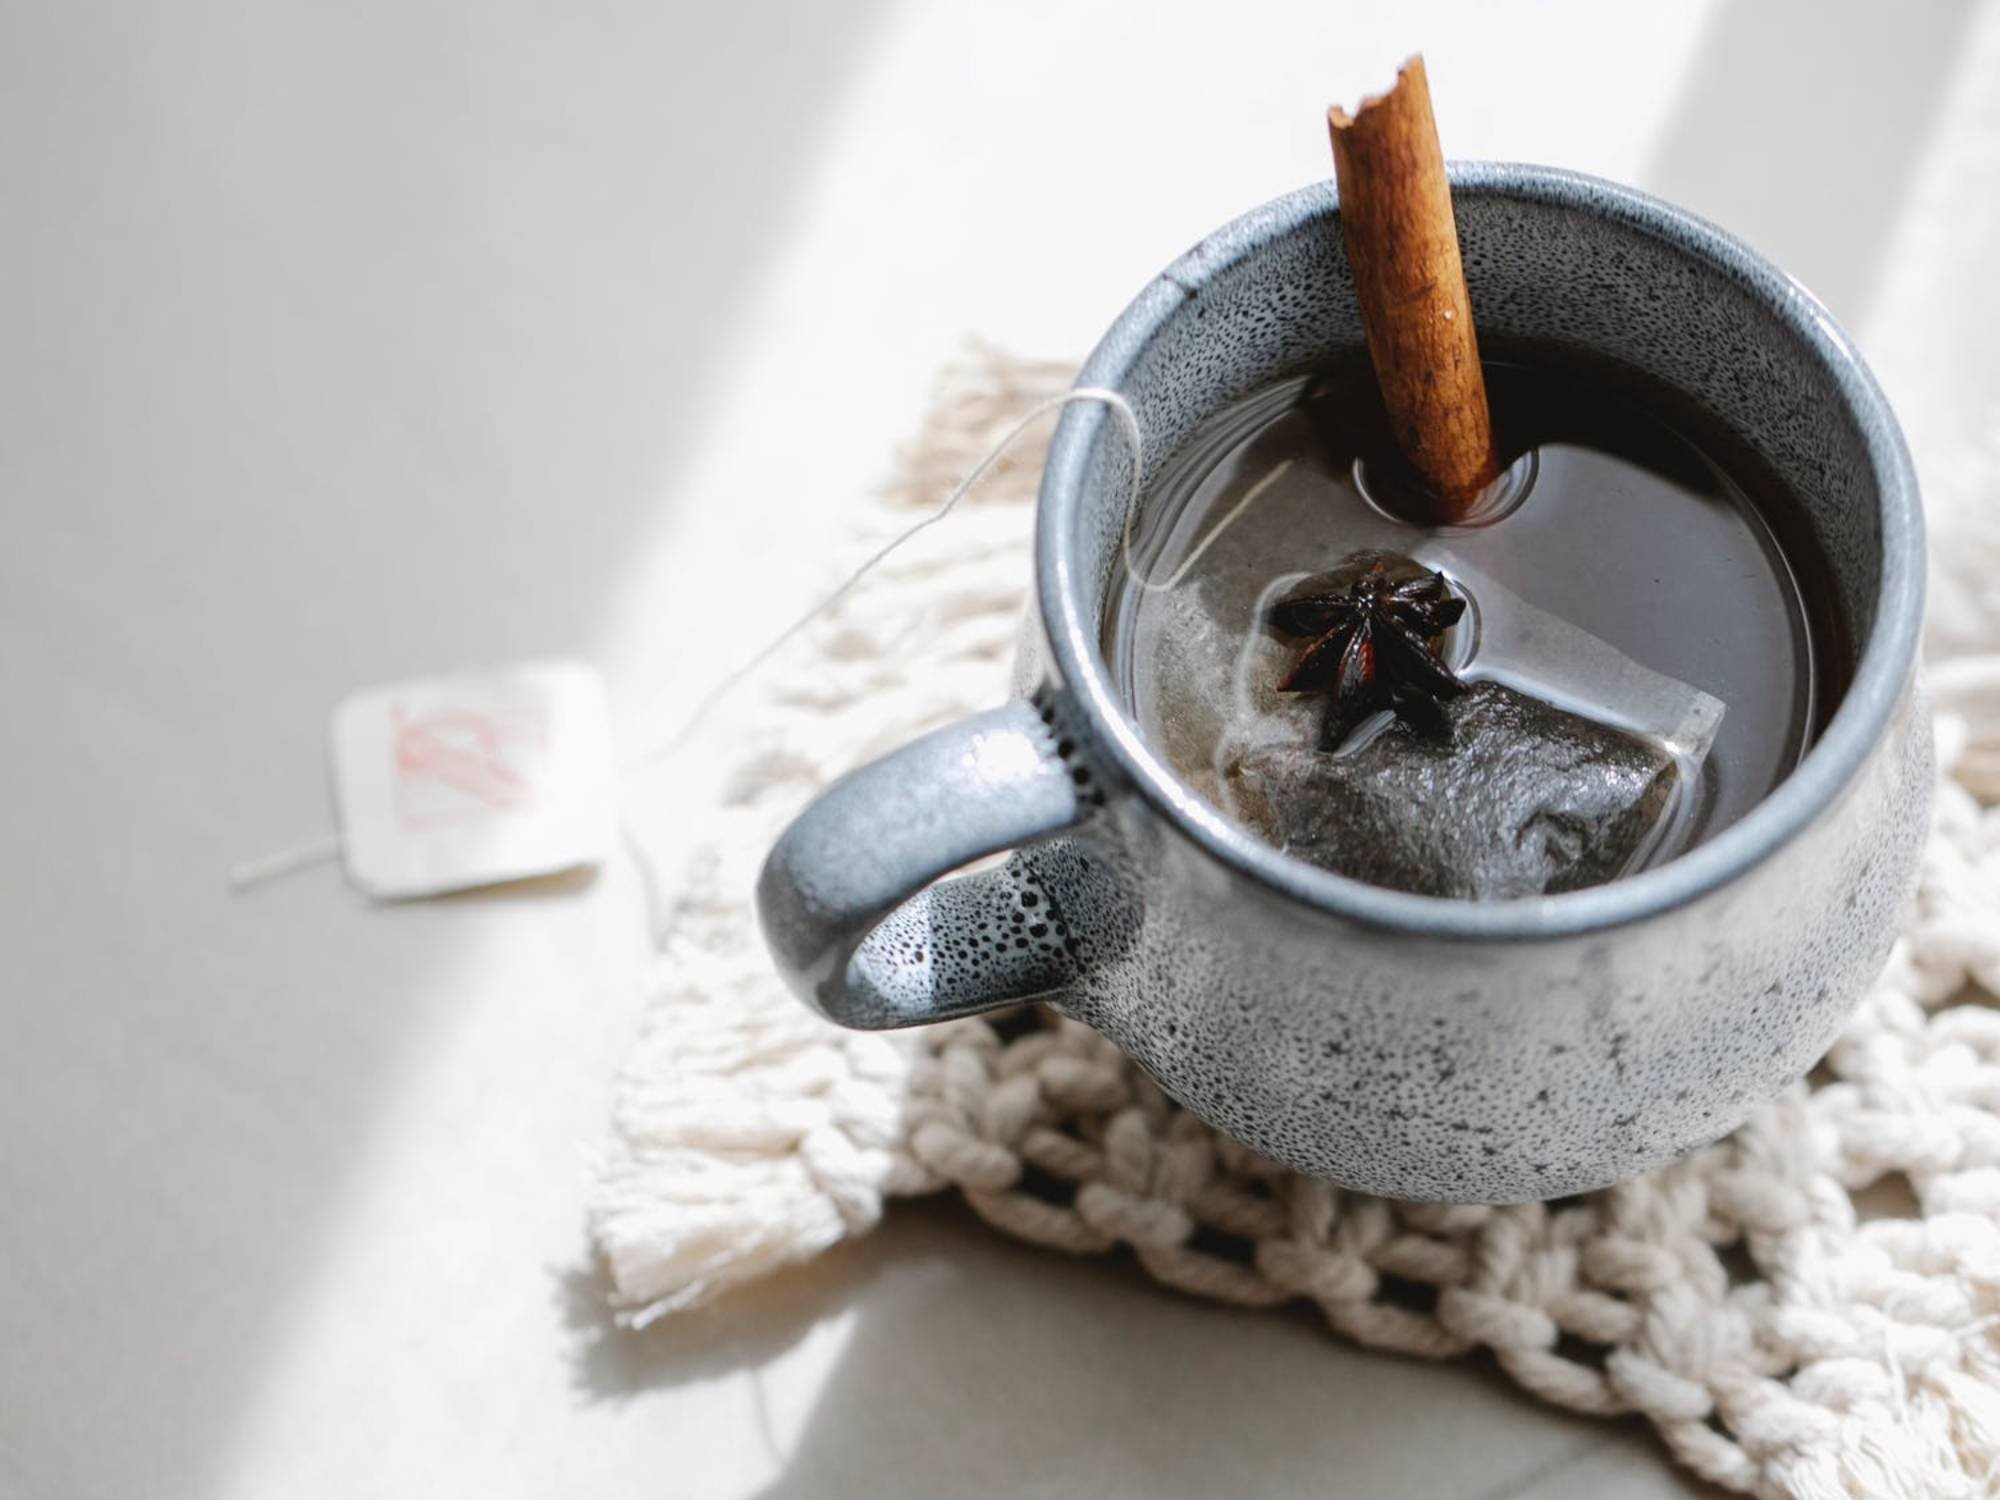 The easy way to get coffee and tea stains off your mugs